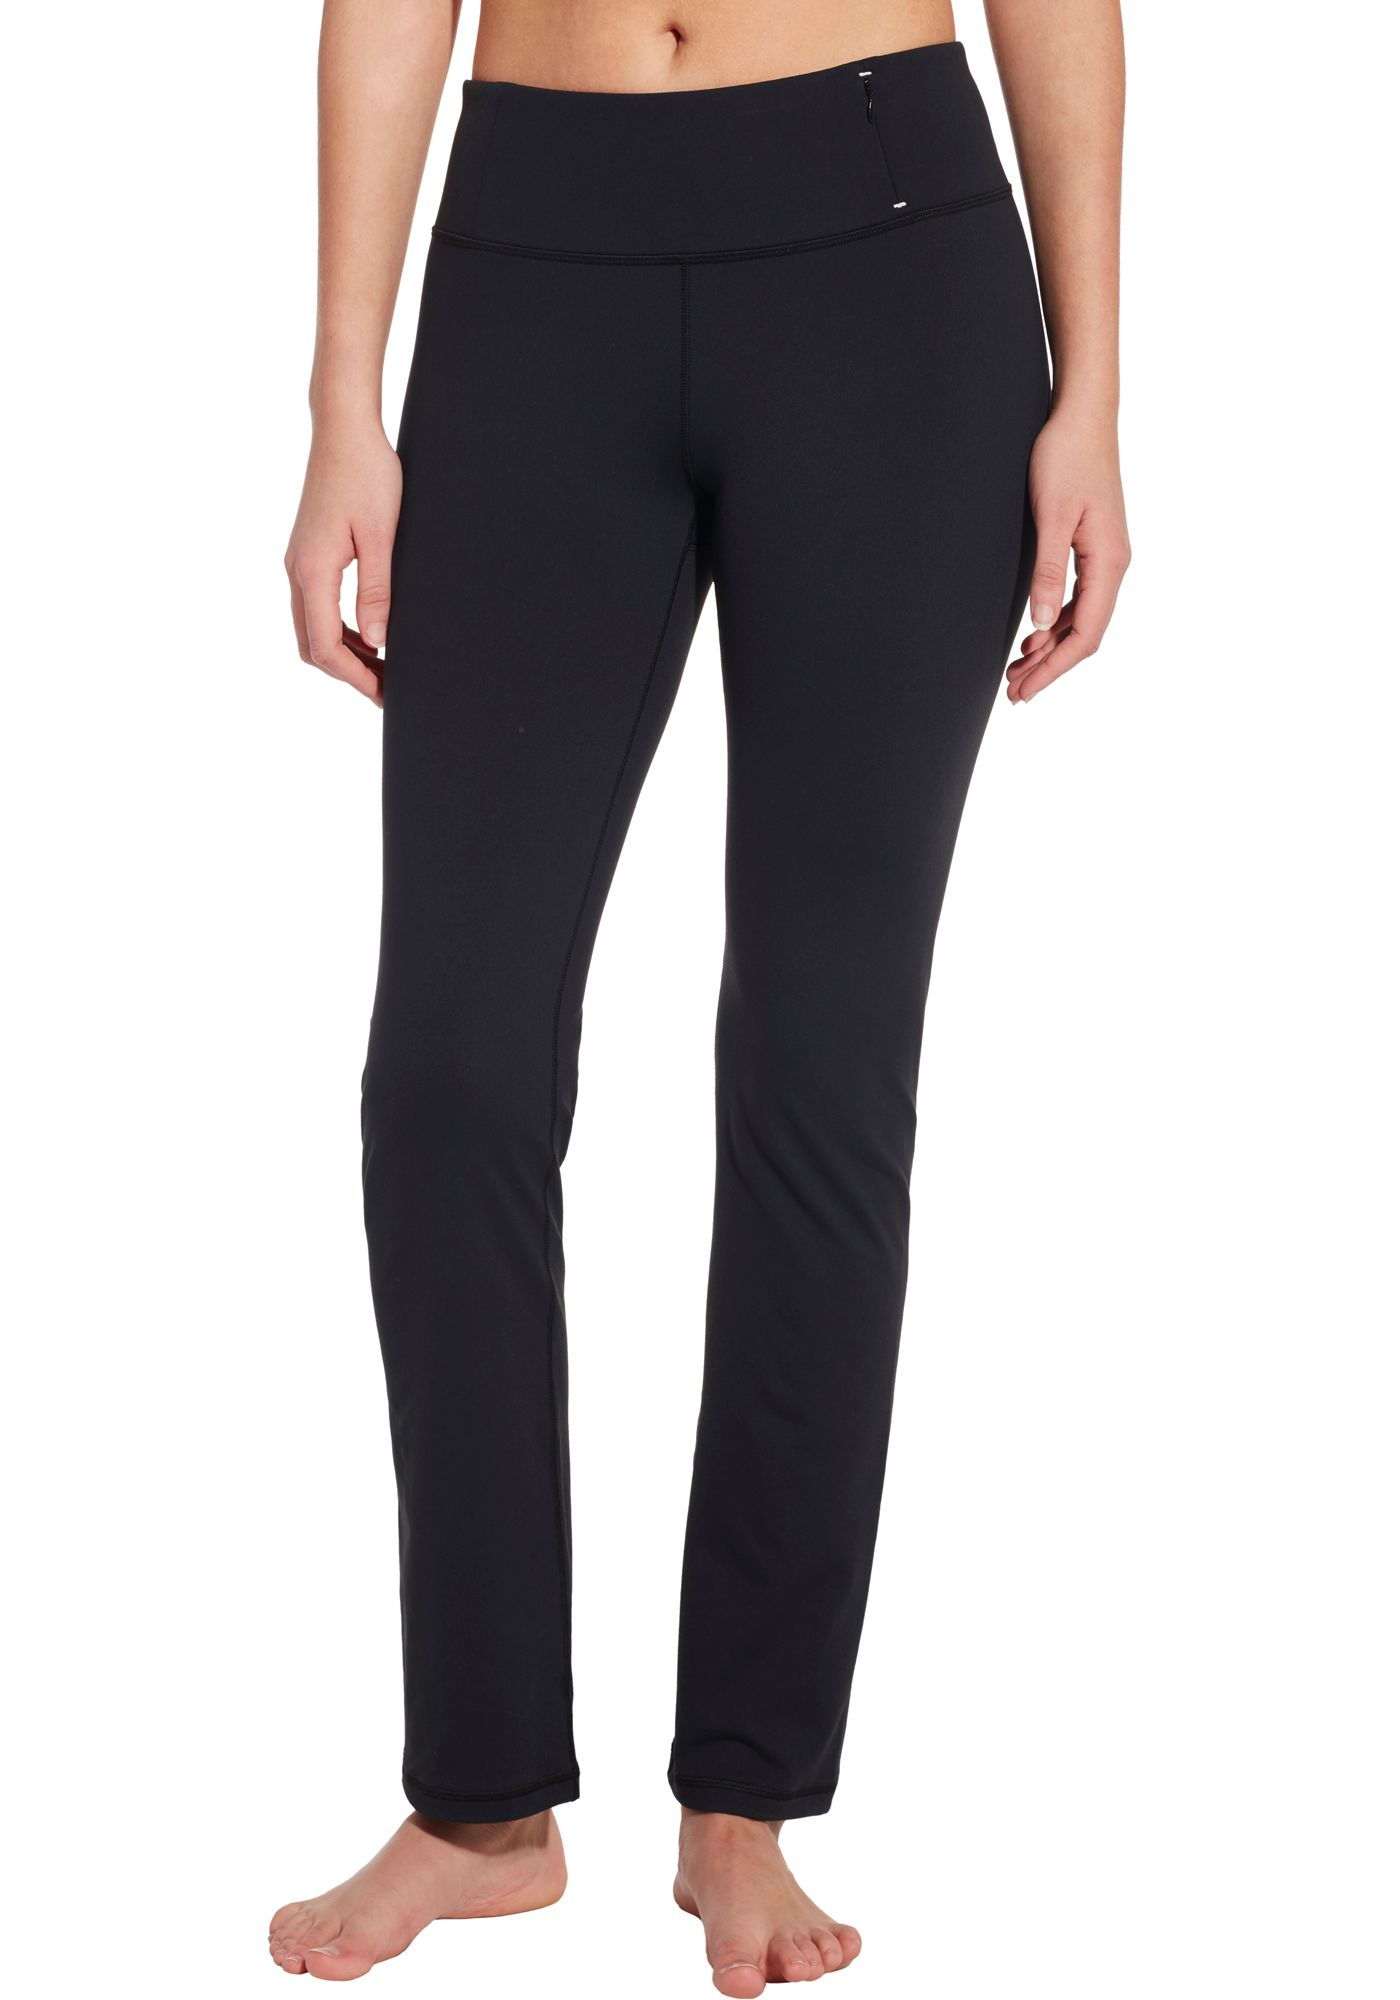 CALIA by Carrie Underwood Women's Essential Mid-Rise Pants